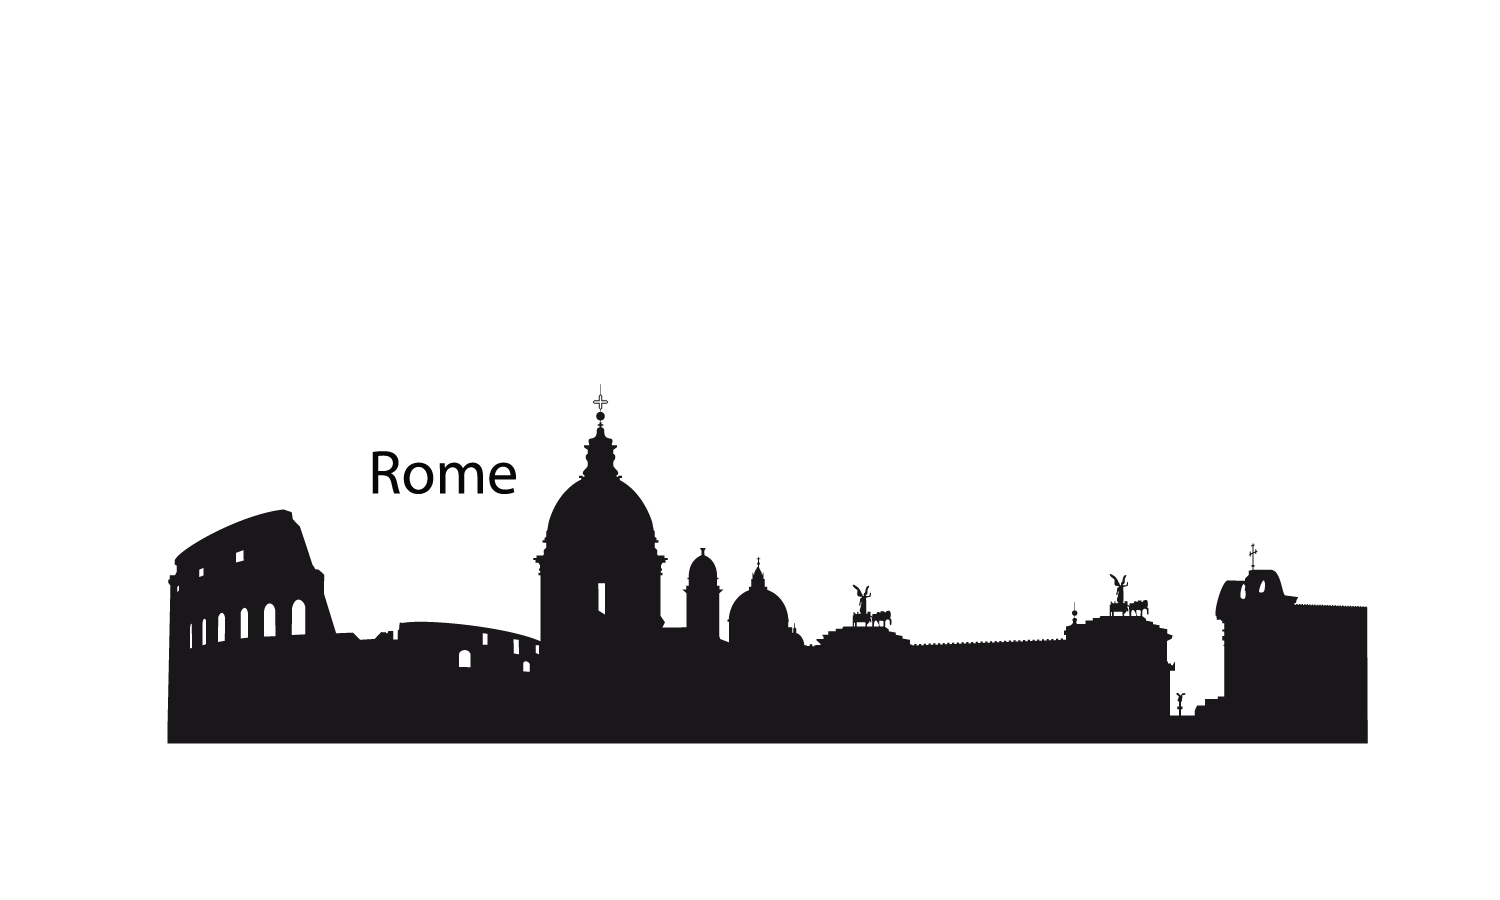 Roma Skyline City Silhouette 18426 Hd Wallpapers Png 1500